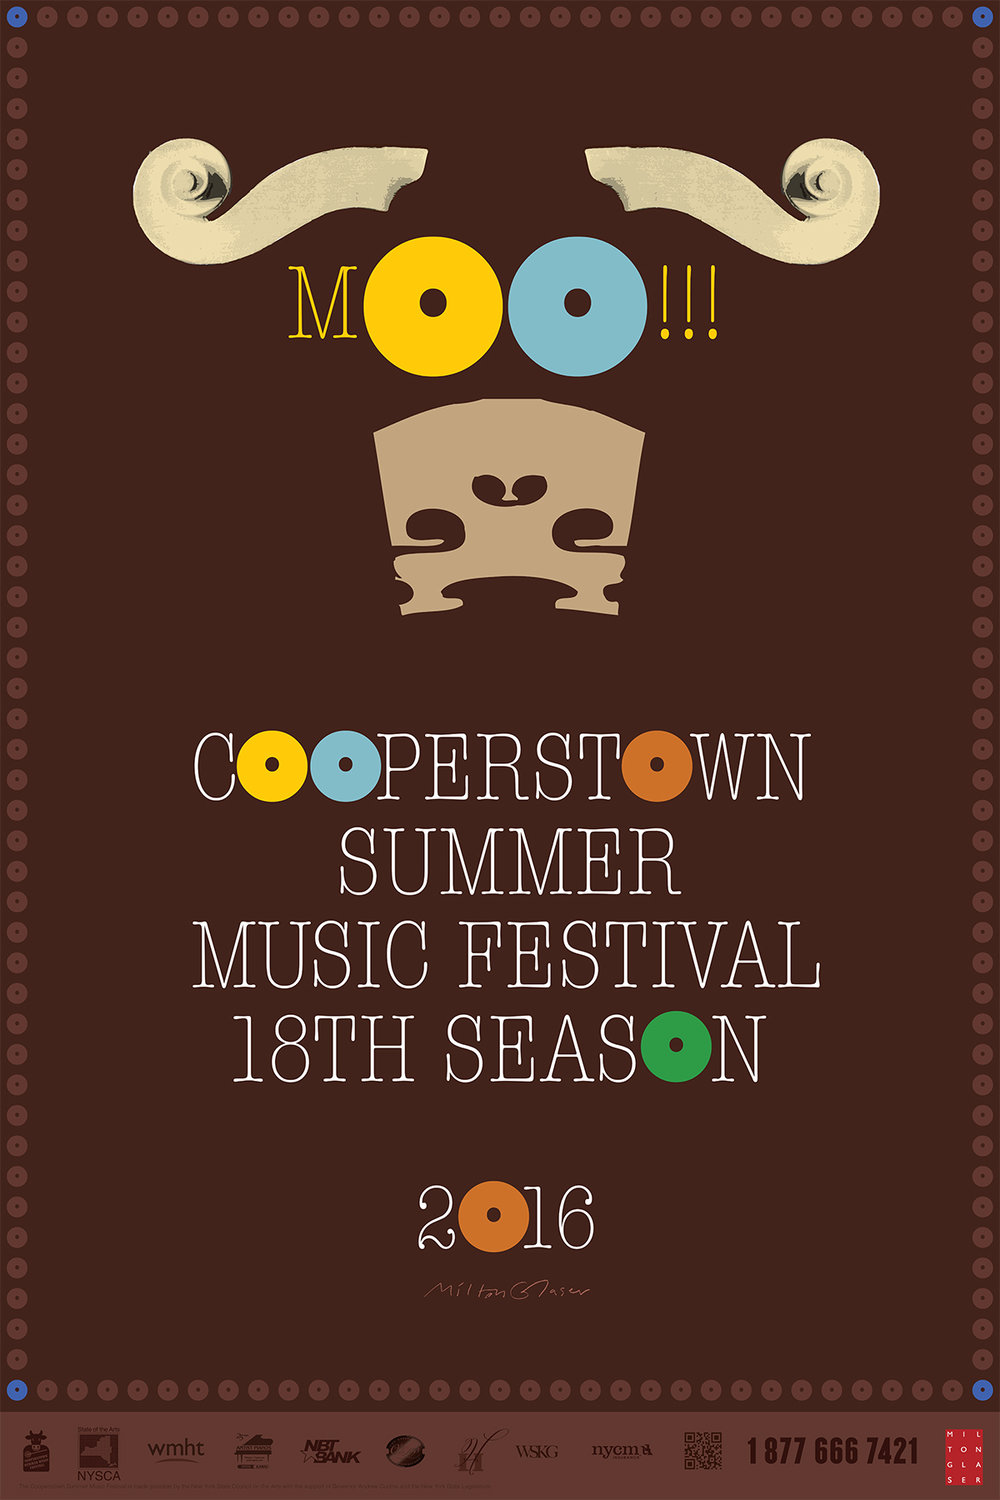 2016_18cooperstown-music-festival_newlogo_3_1200px.jpg